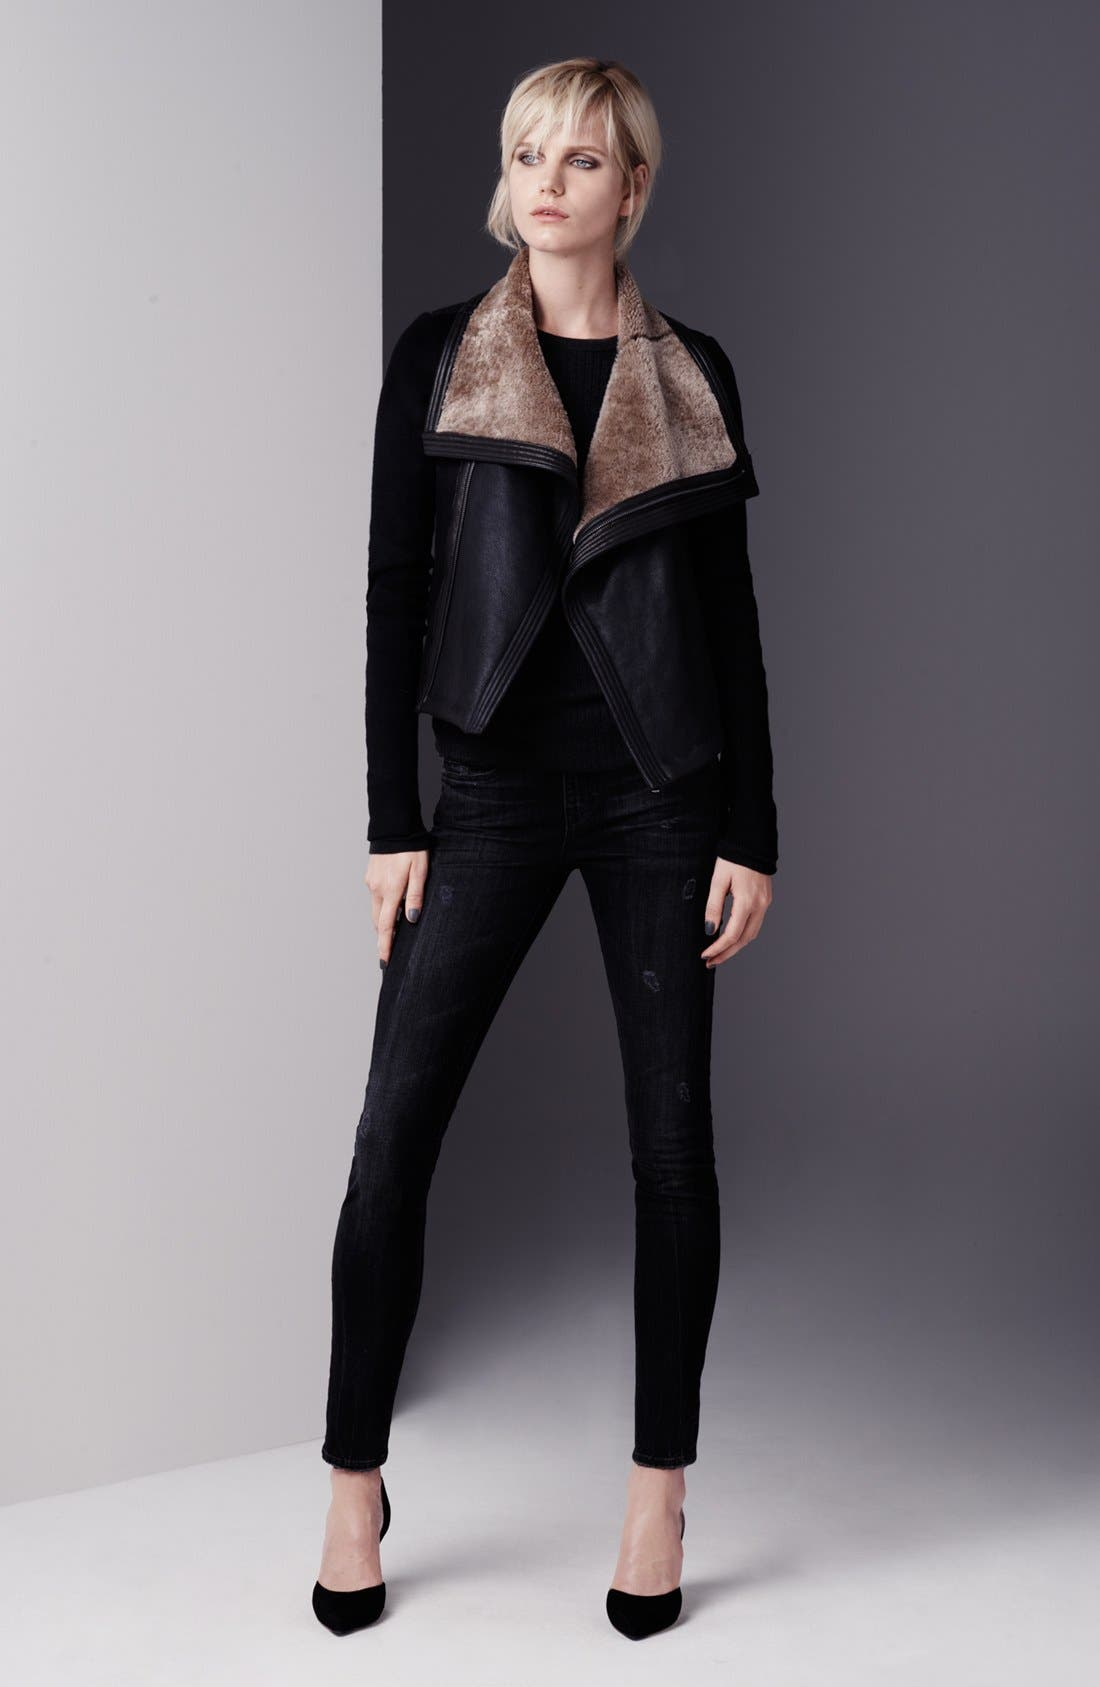 Main Image - Vince Leather & Genuine Shearling Moto Jacket, Sweater & Jeans